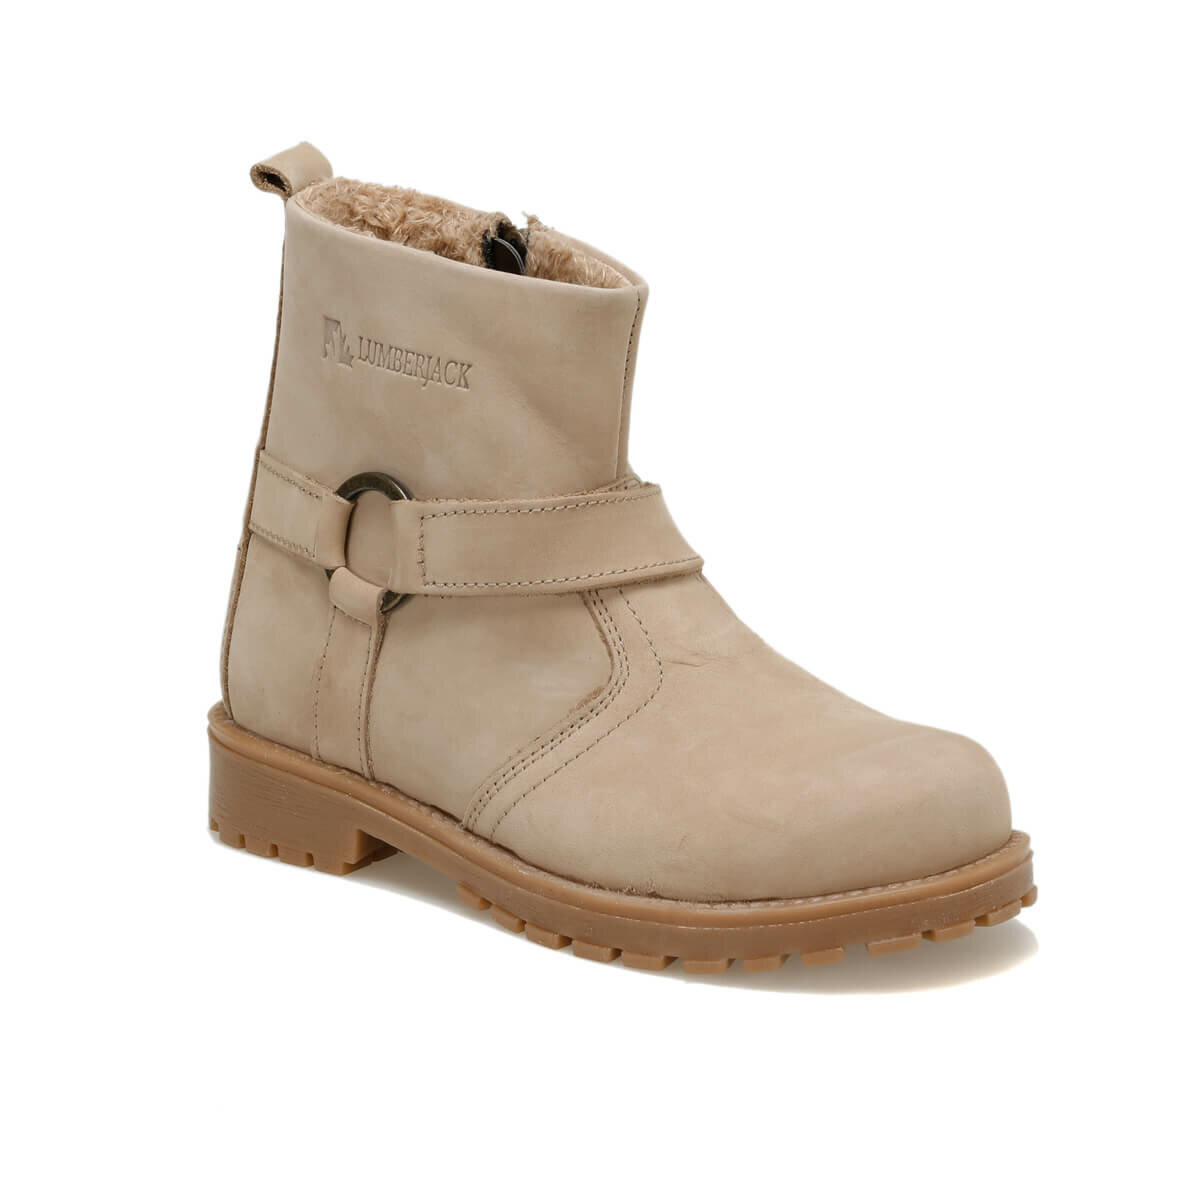 FLO SON 9PR Sand Color Female Child Boots LUMBERJACK